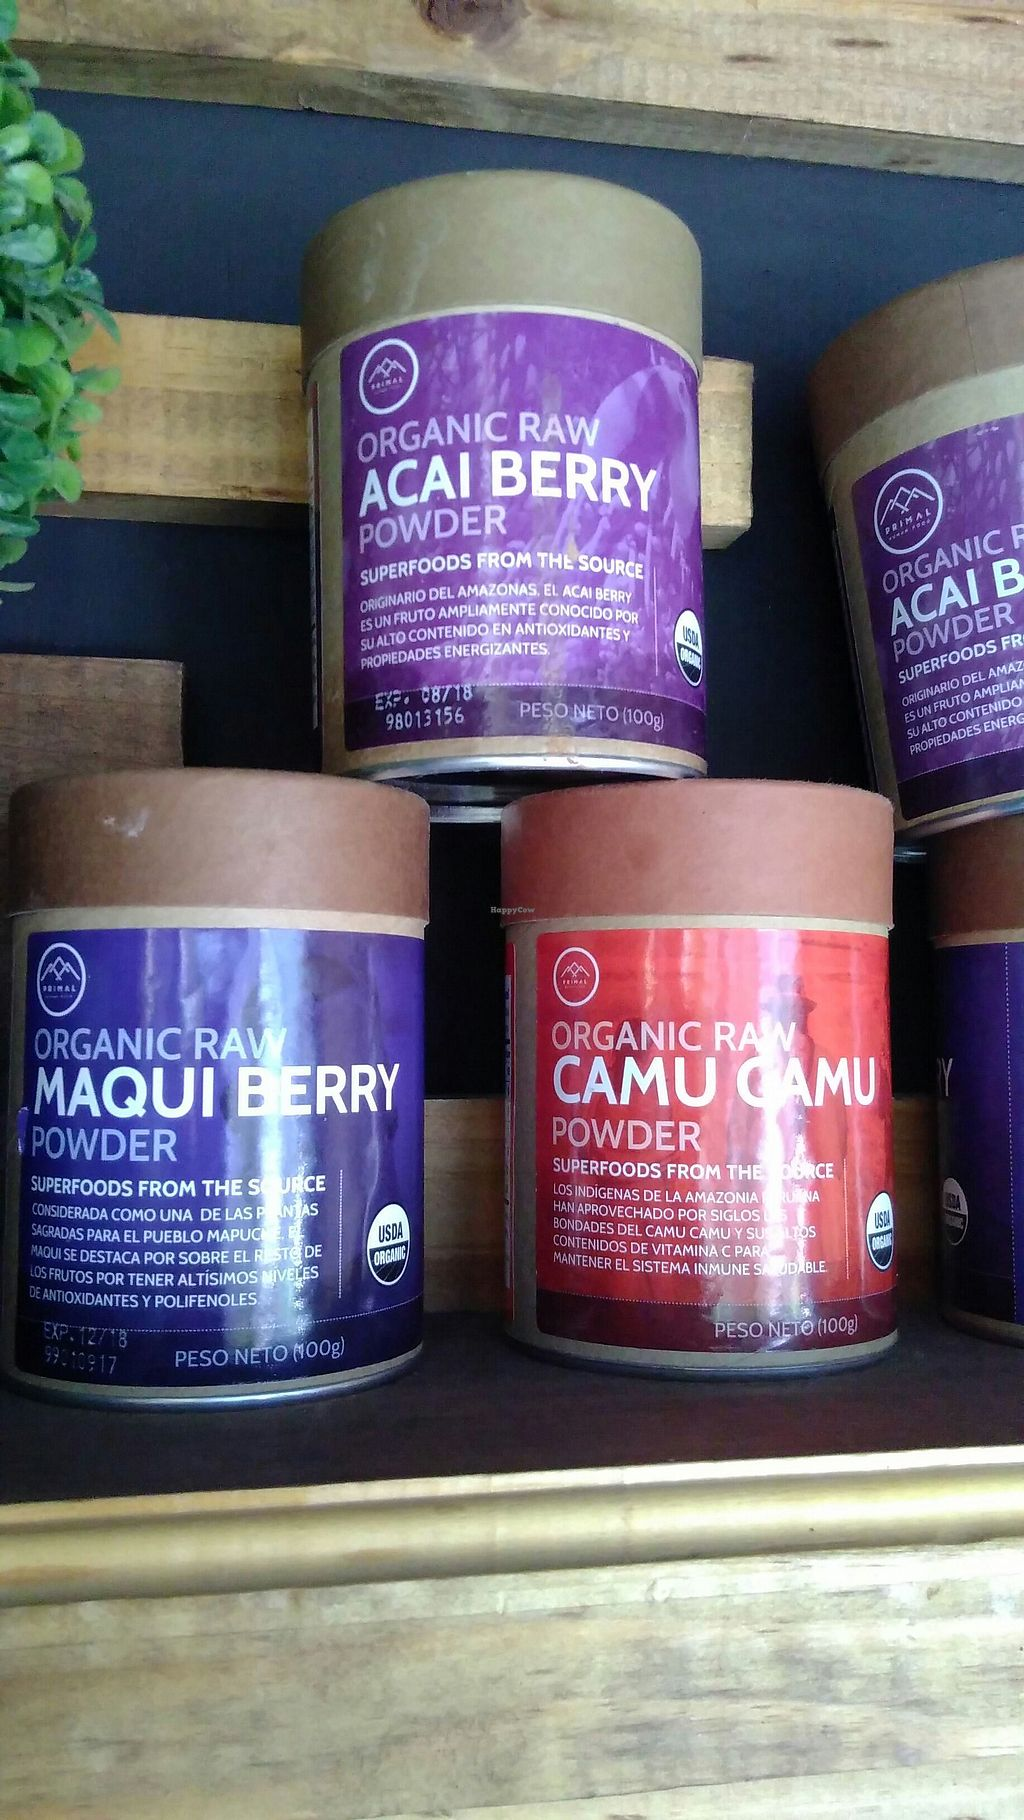 """Photo of O Smoothiebar & Market  by <a href=""""/members/profile/ajito"""">ajito</a> <br/>Organic powders <br/> March 17, 2018  - <a href='/contact/abuse/image/114773/371651'>Report</a>"""